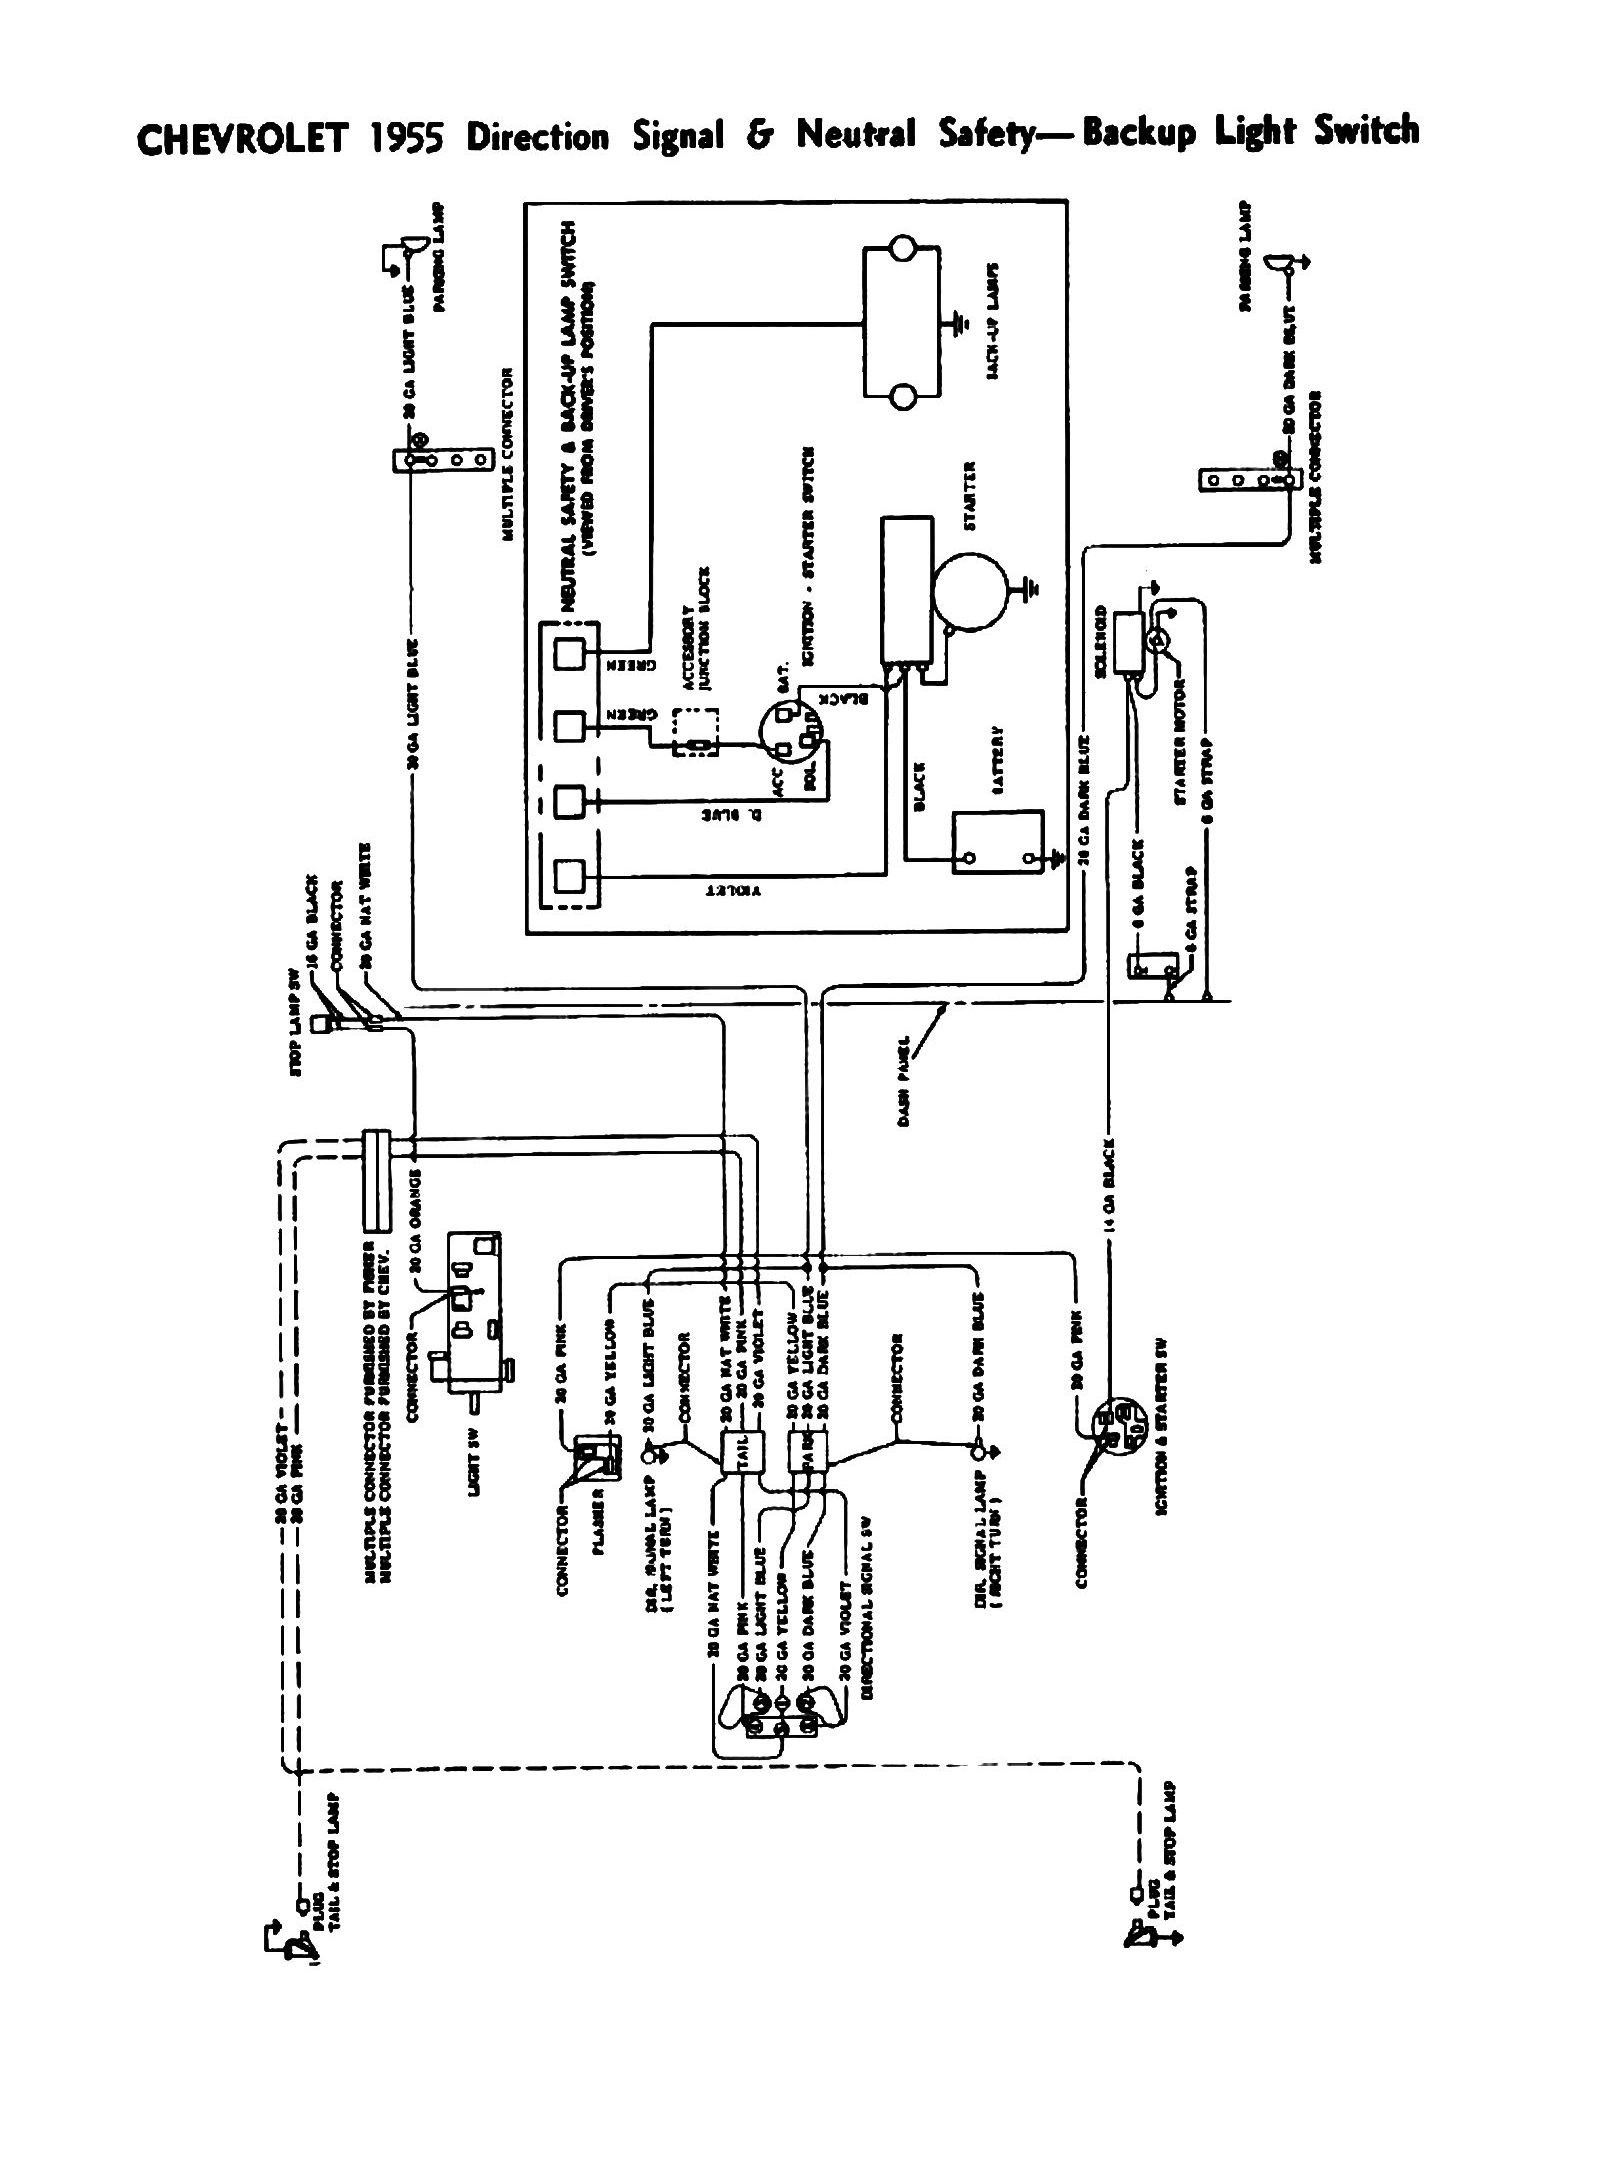 1948 chevy truck wiring diagram example electrical wiring diagram u2022 rh huntervalleyhotels co